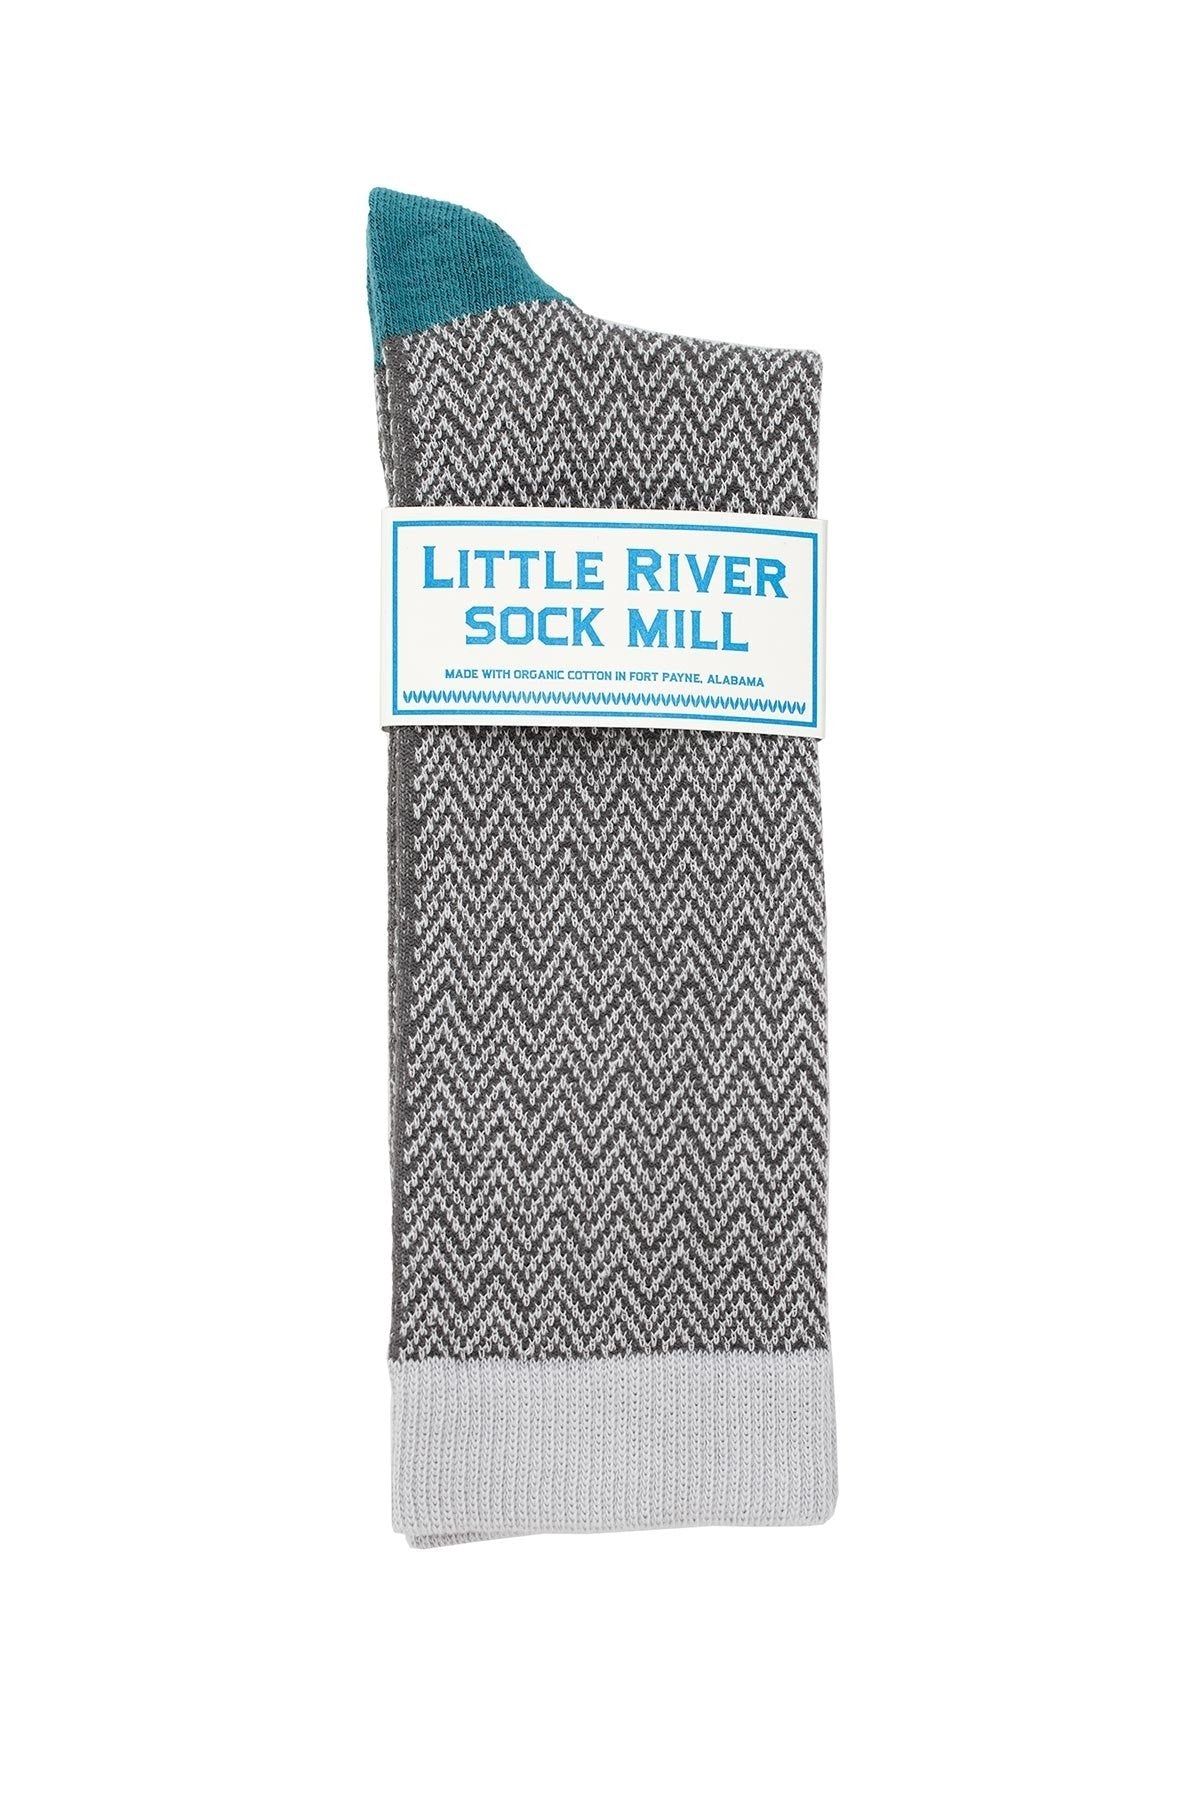 TEXTURED HERRINGBONE CREW SOCK BY LITTLE RIVER SOCK MILL